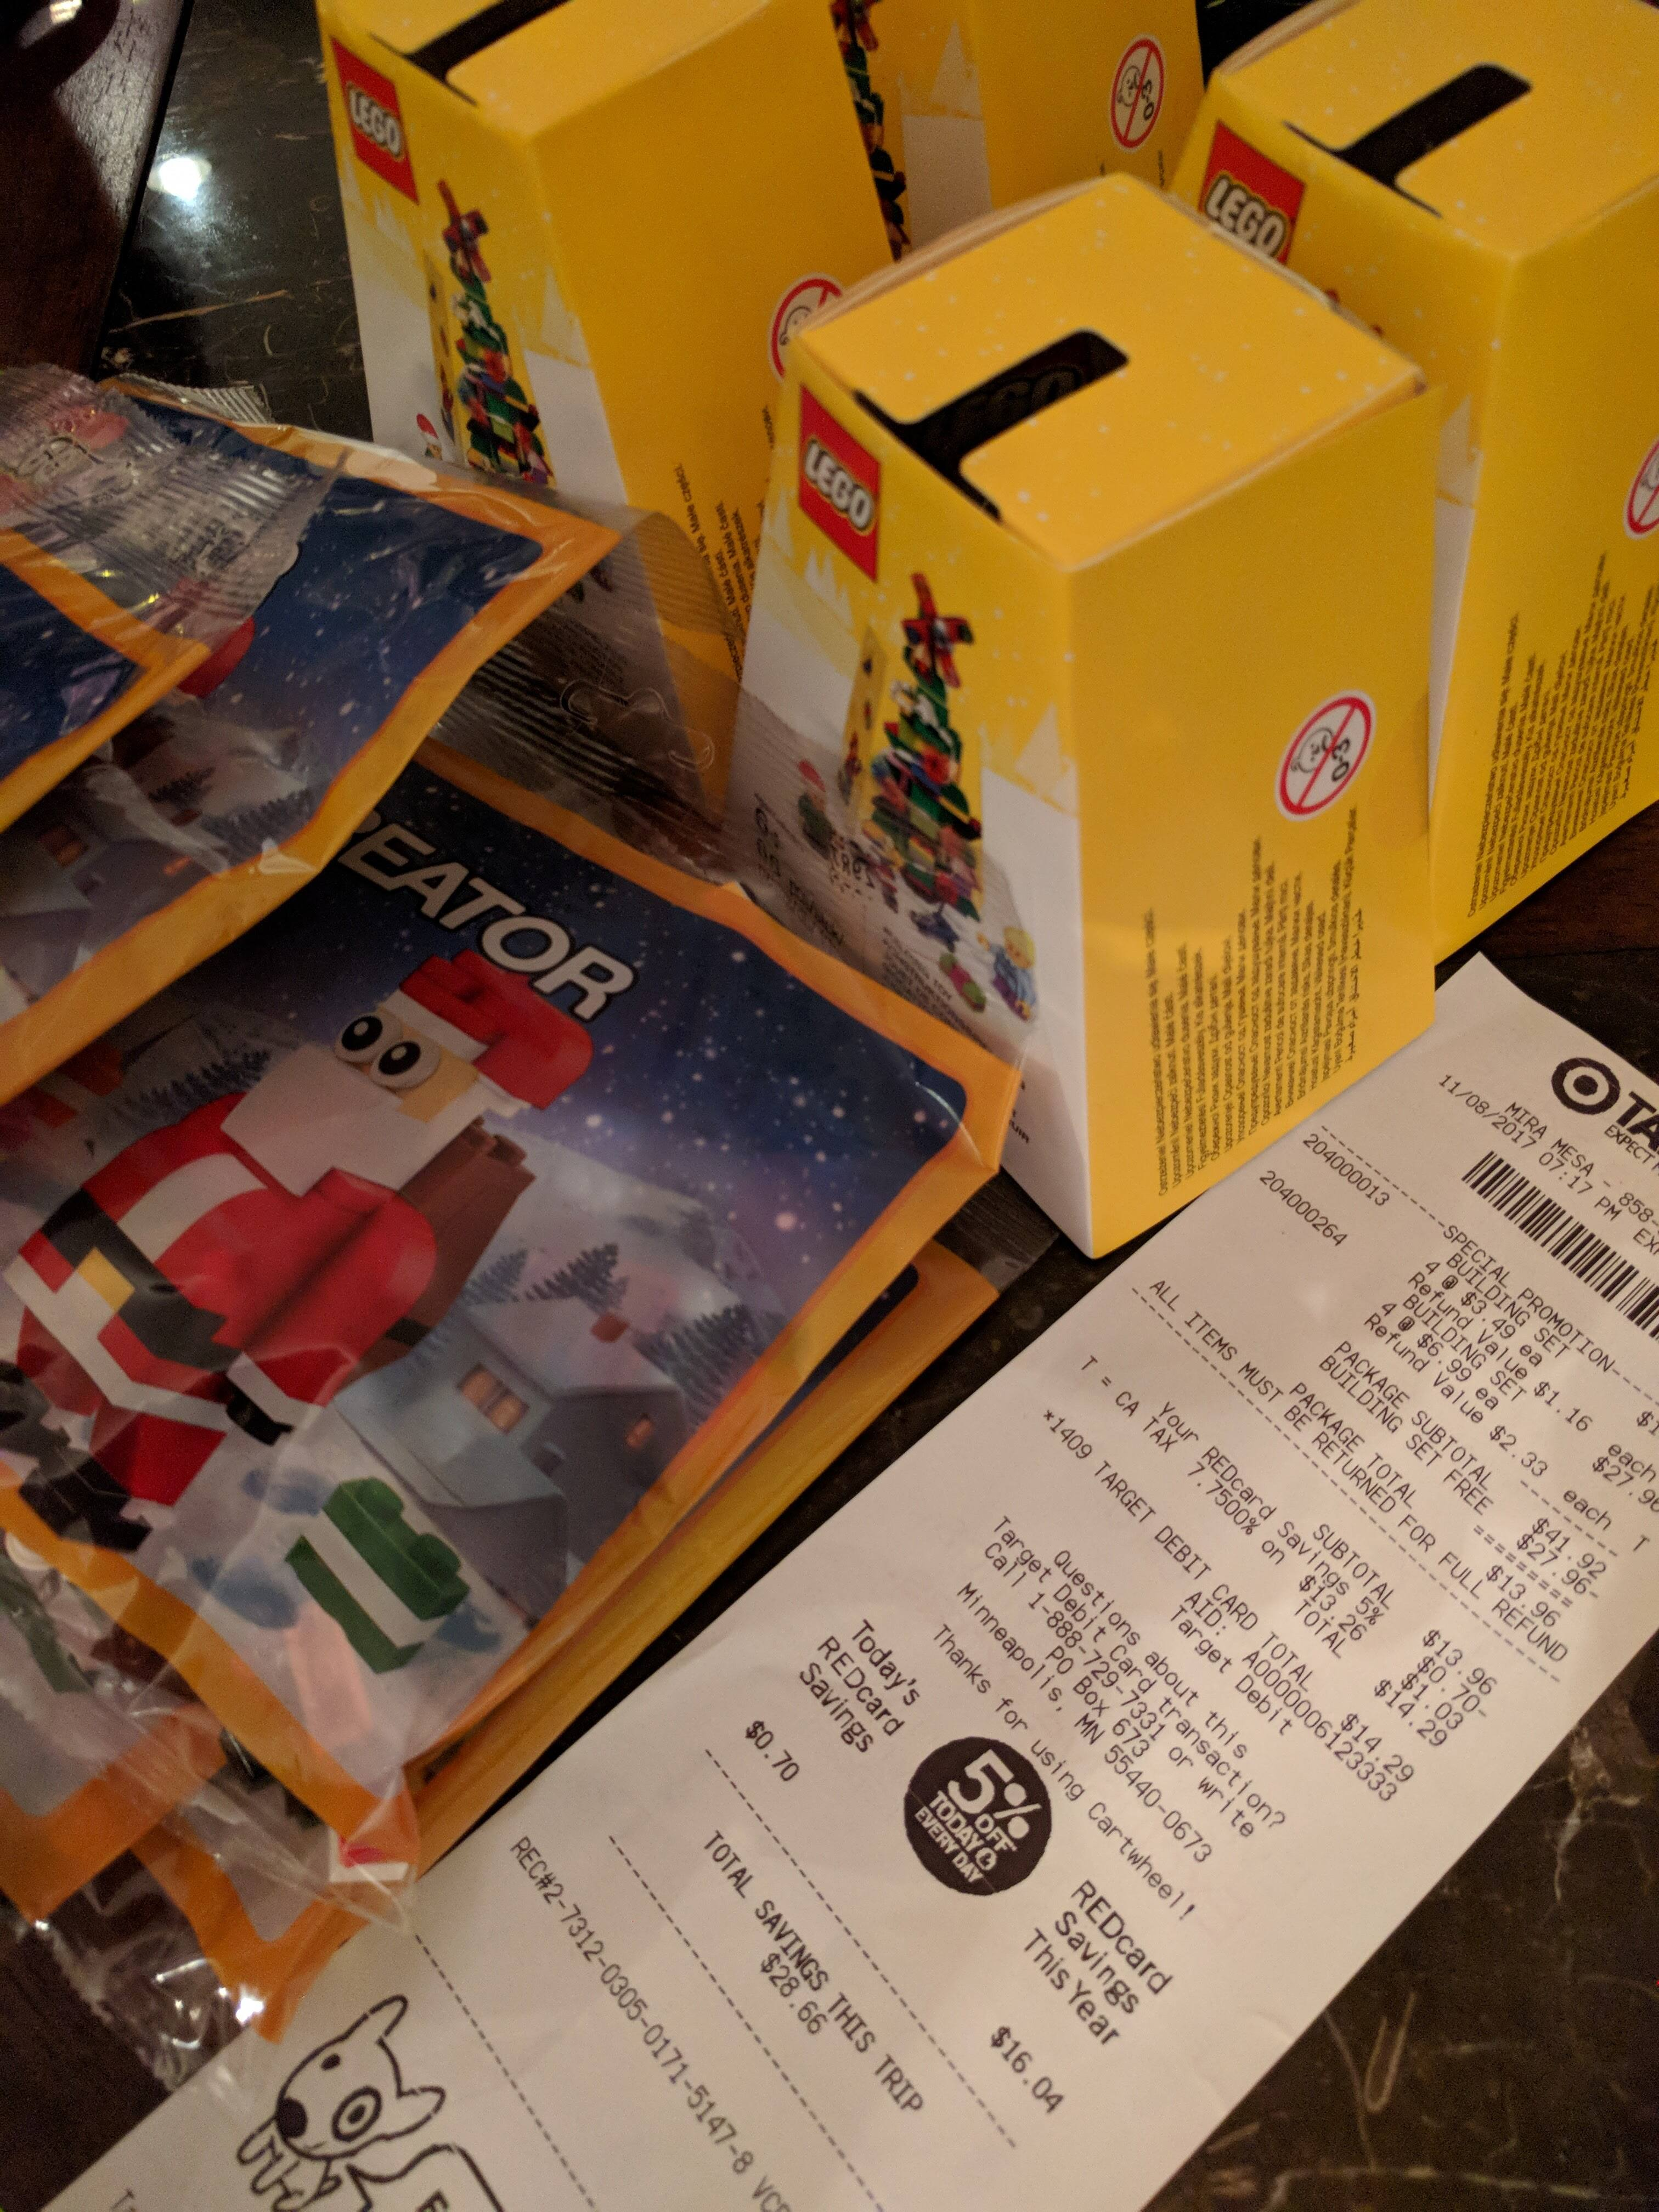 LEGO Christmas Set free with purchase of LEGO Santa Set at Target In-Store $3.49 + tax